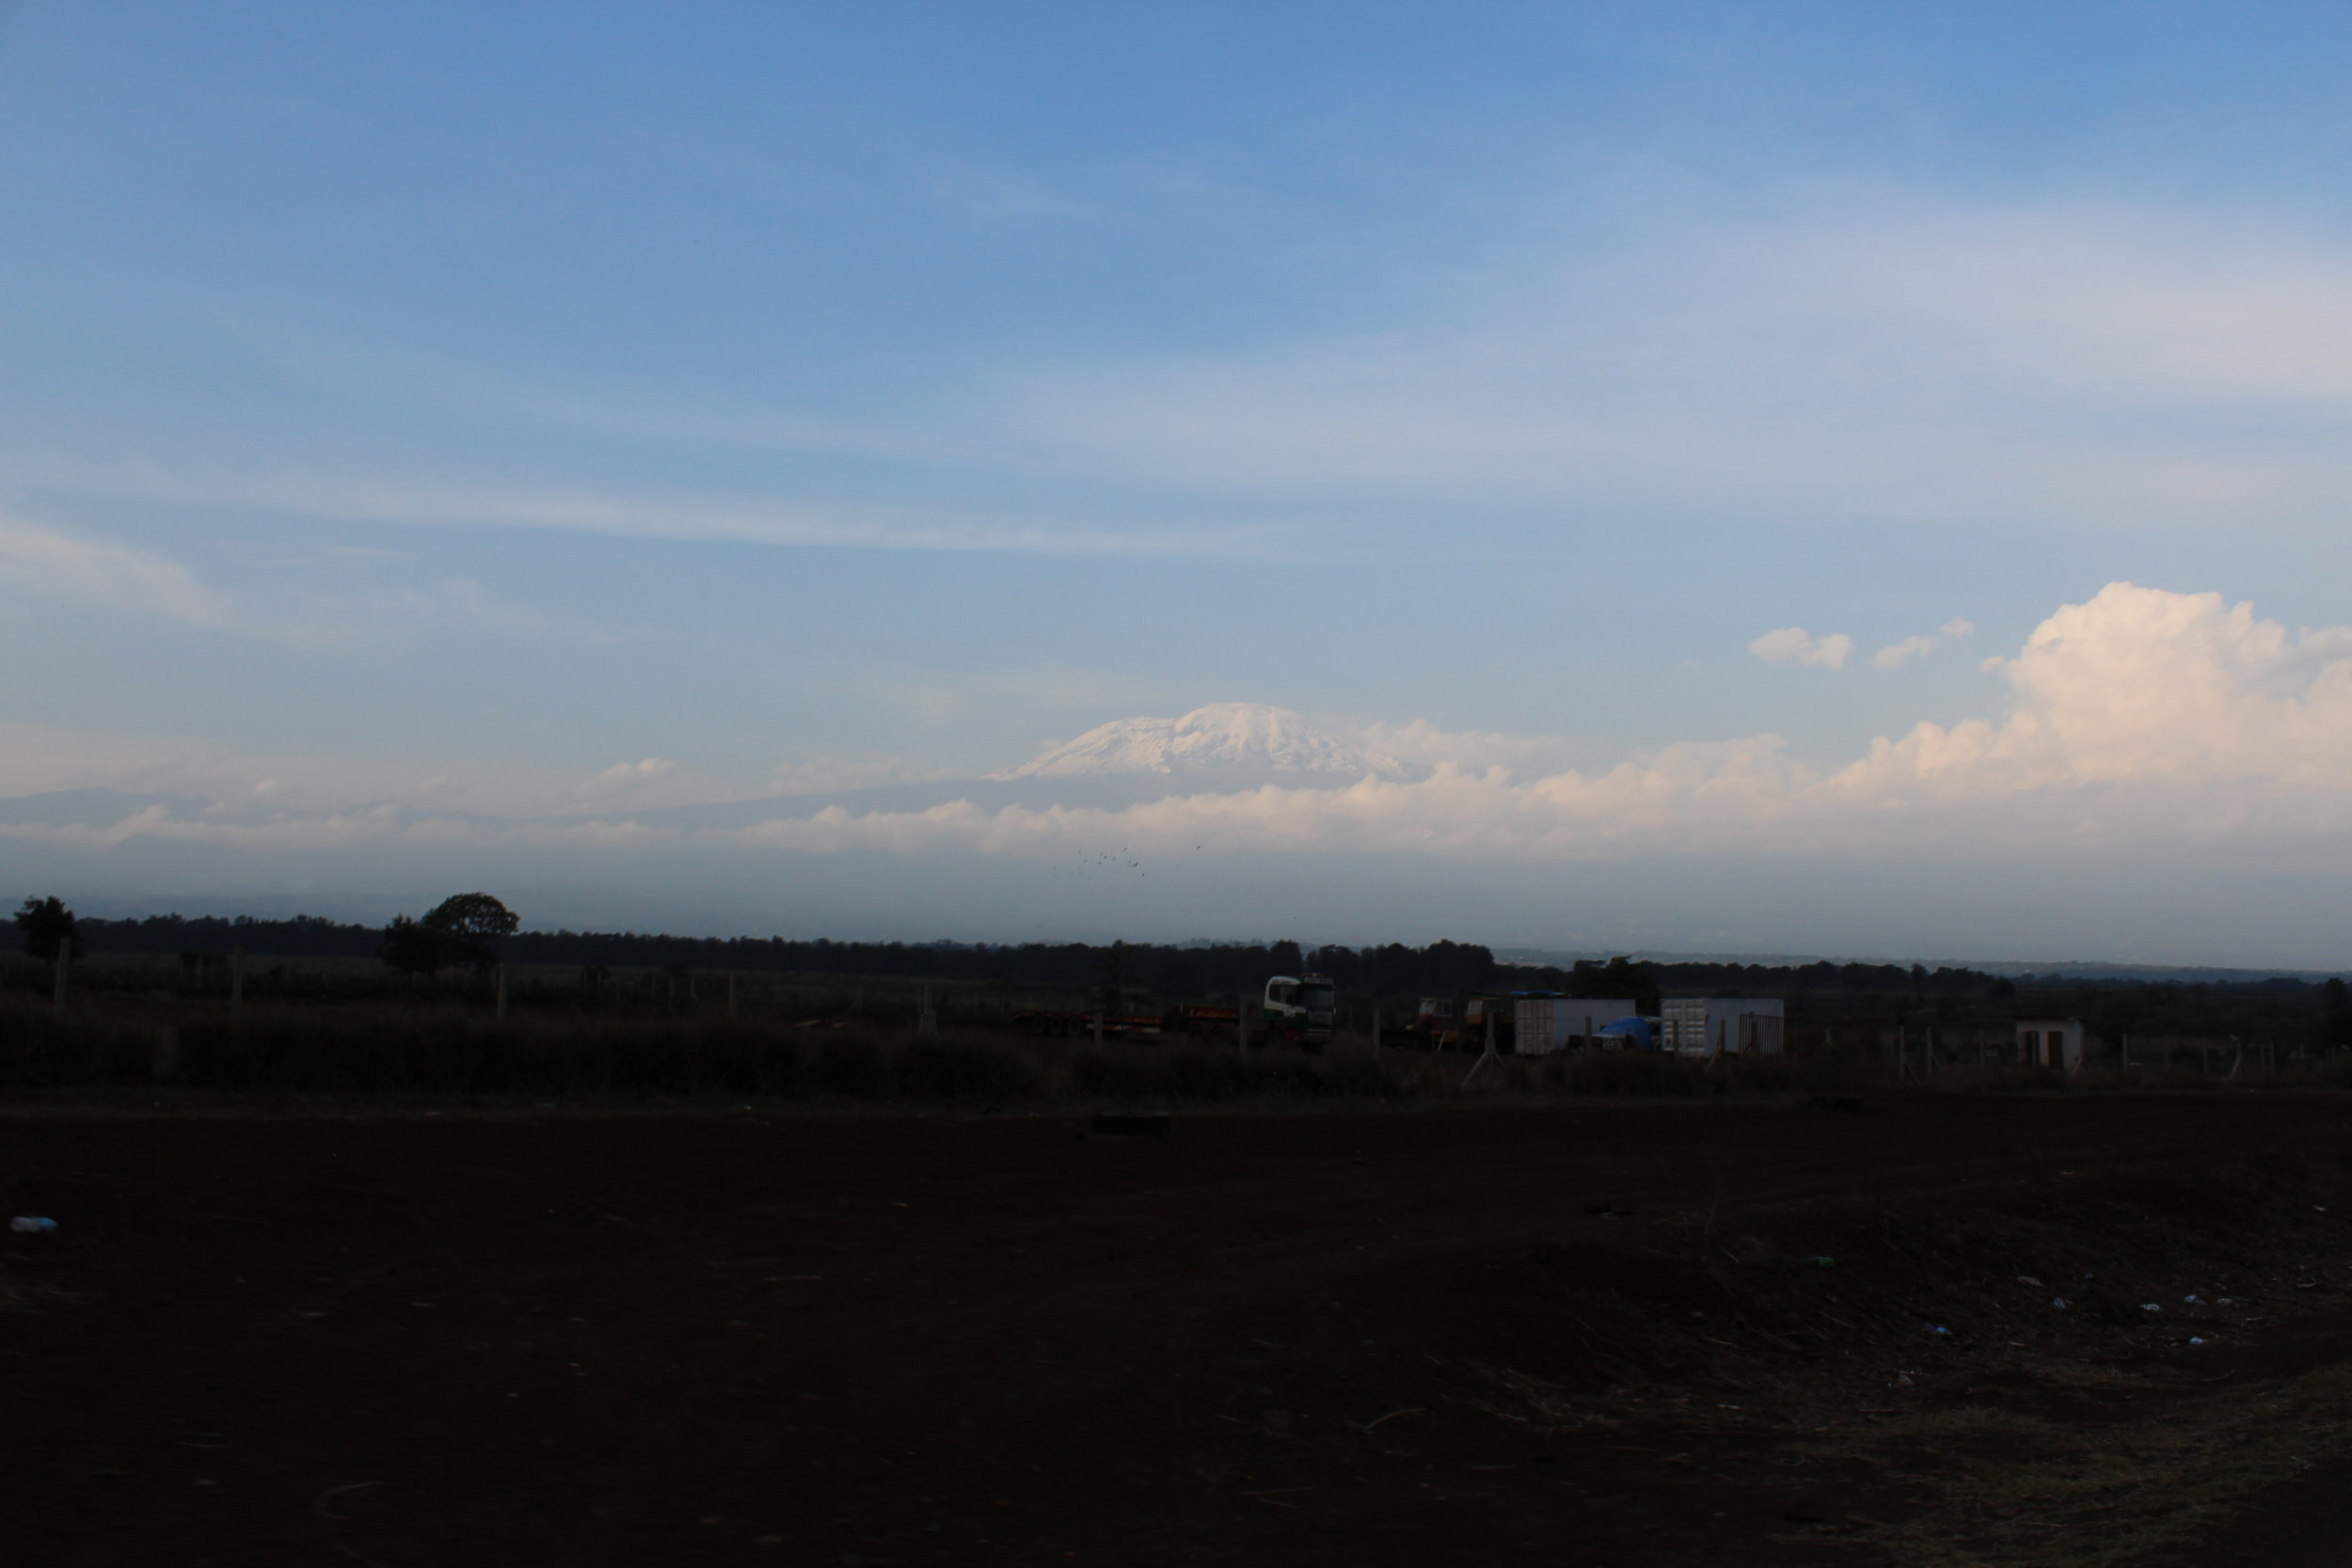 View of Mount Kilimanjaro on our drive home from Ngorongor Crater.